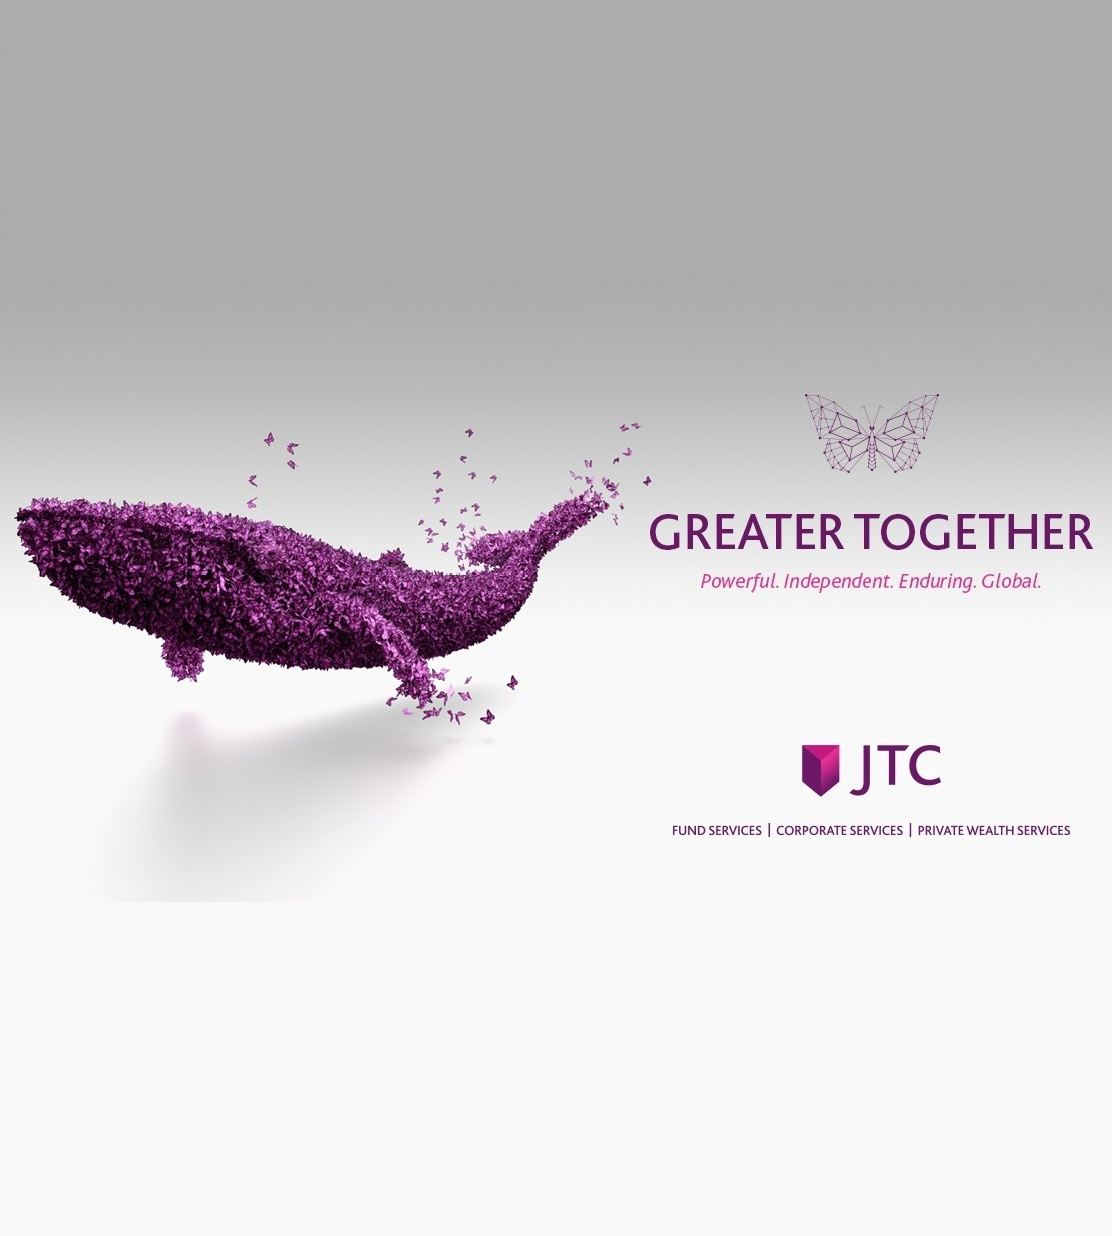 20171004_Greater together5